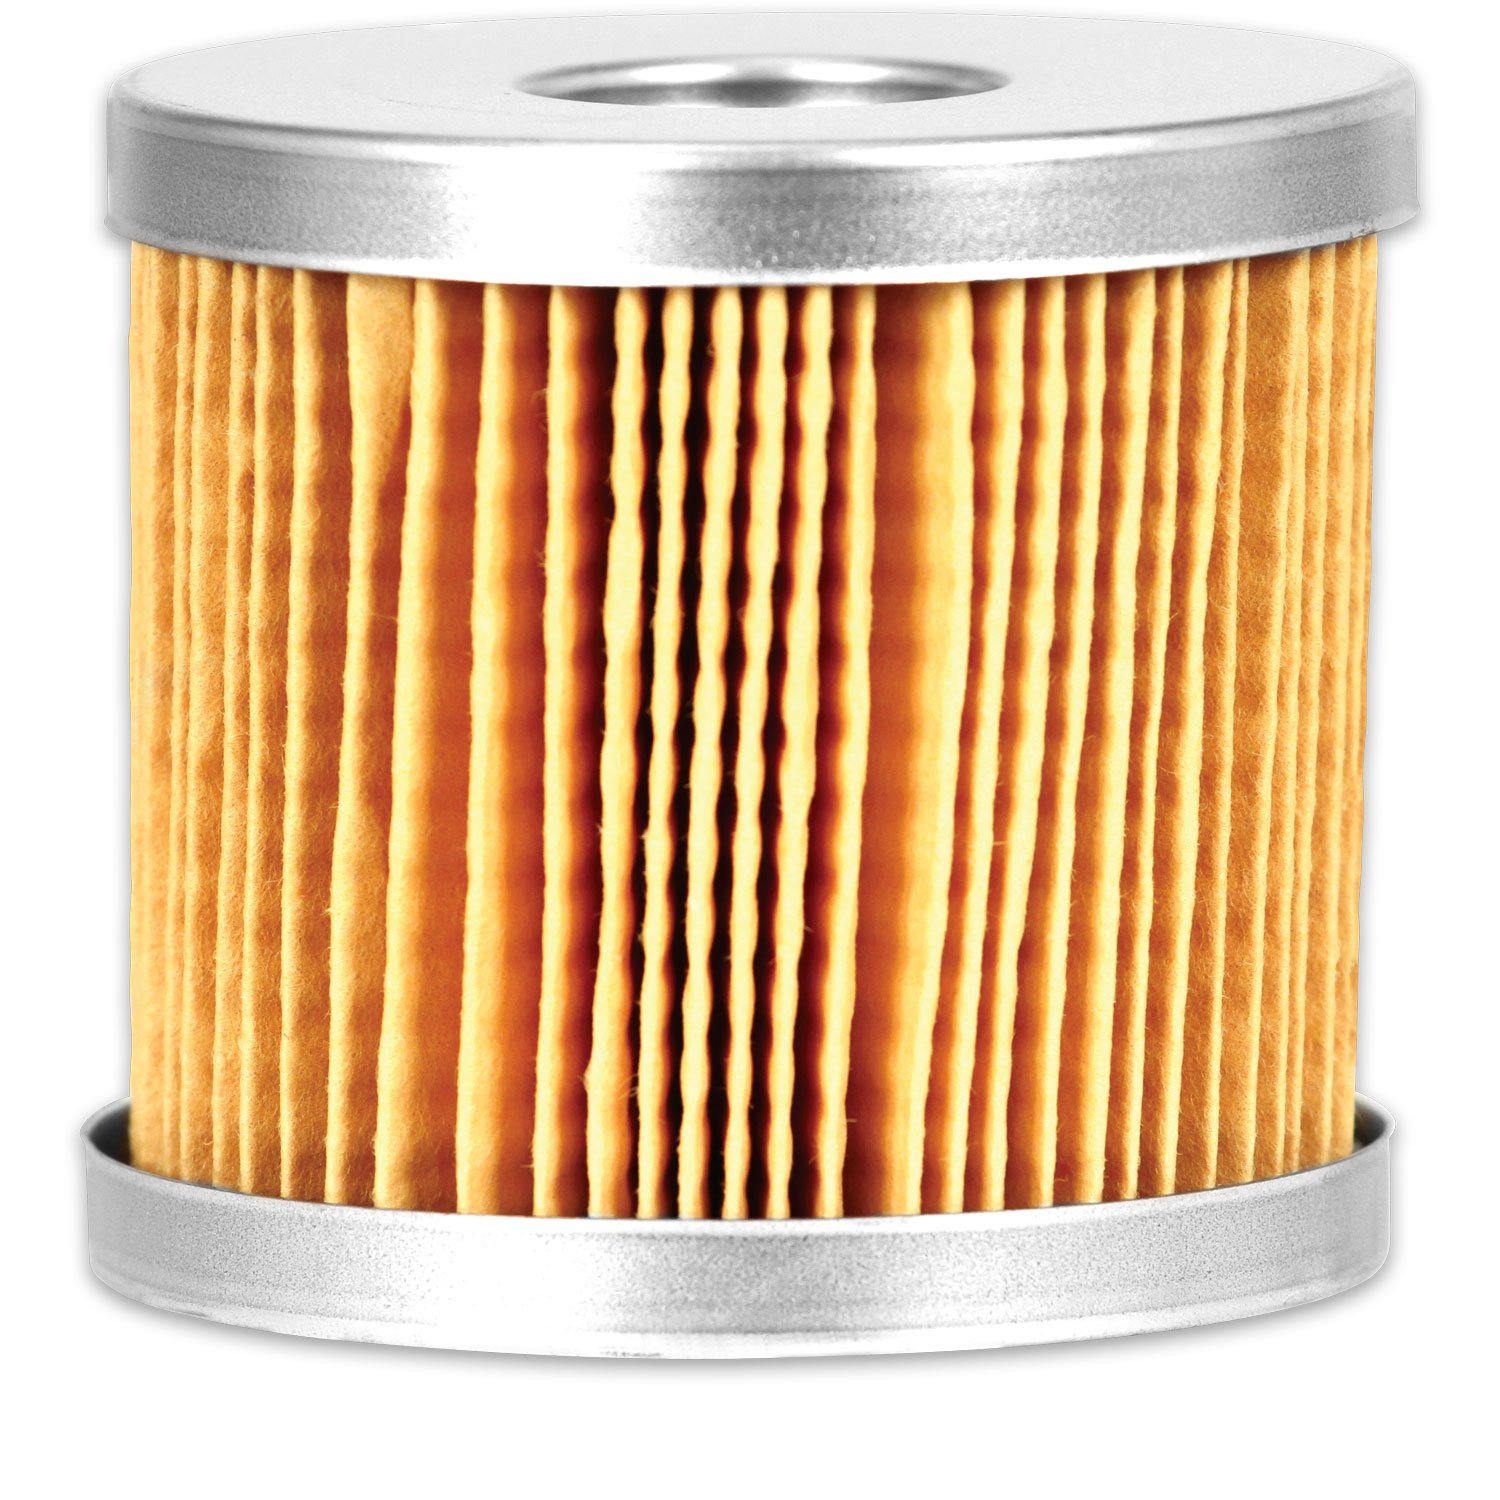 29238 - Mallory Paper Fuel Filter Image